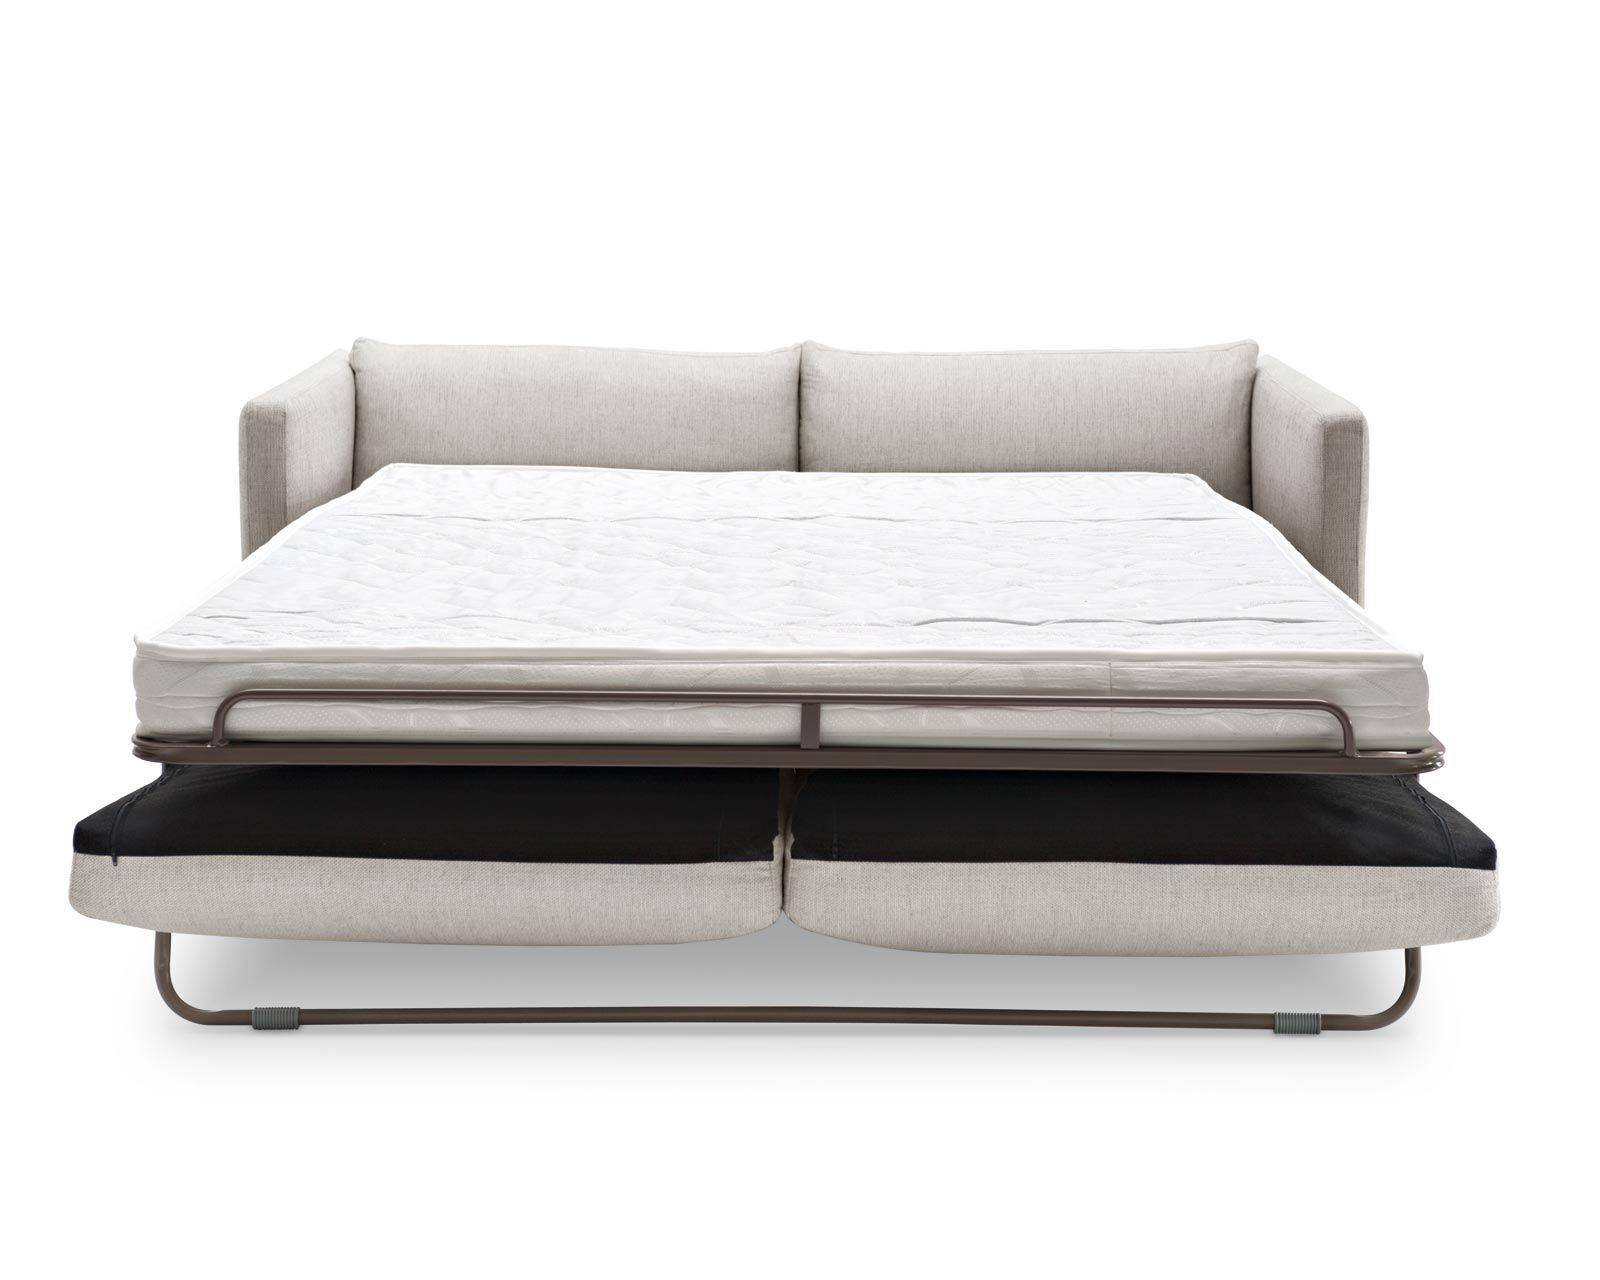 sofa bed support mat canada cheap singapore 2019 latest beds with mattress ideas